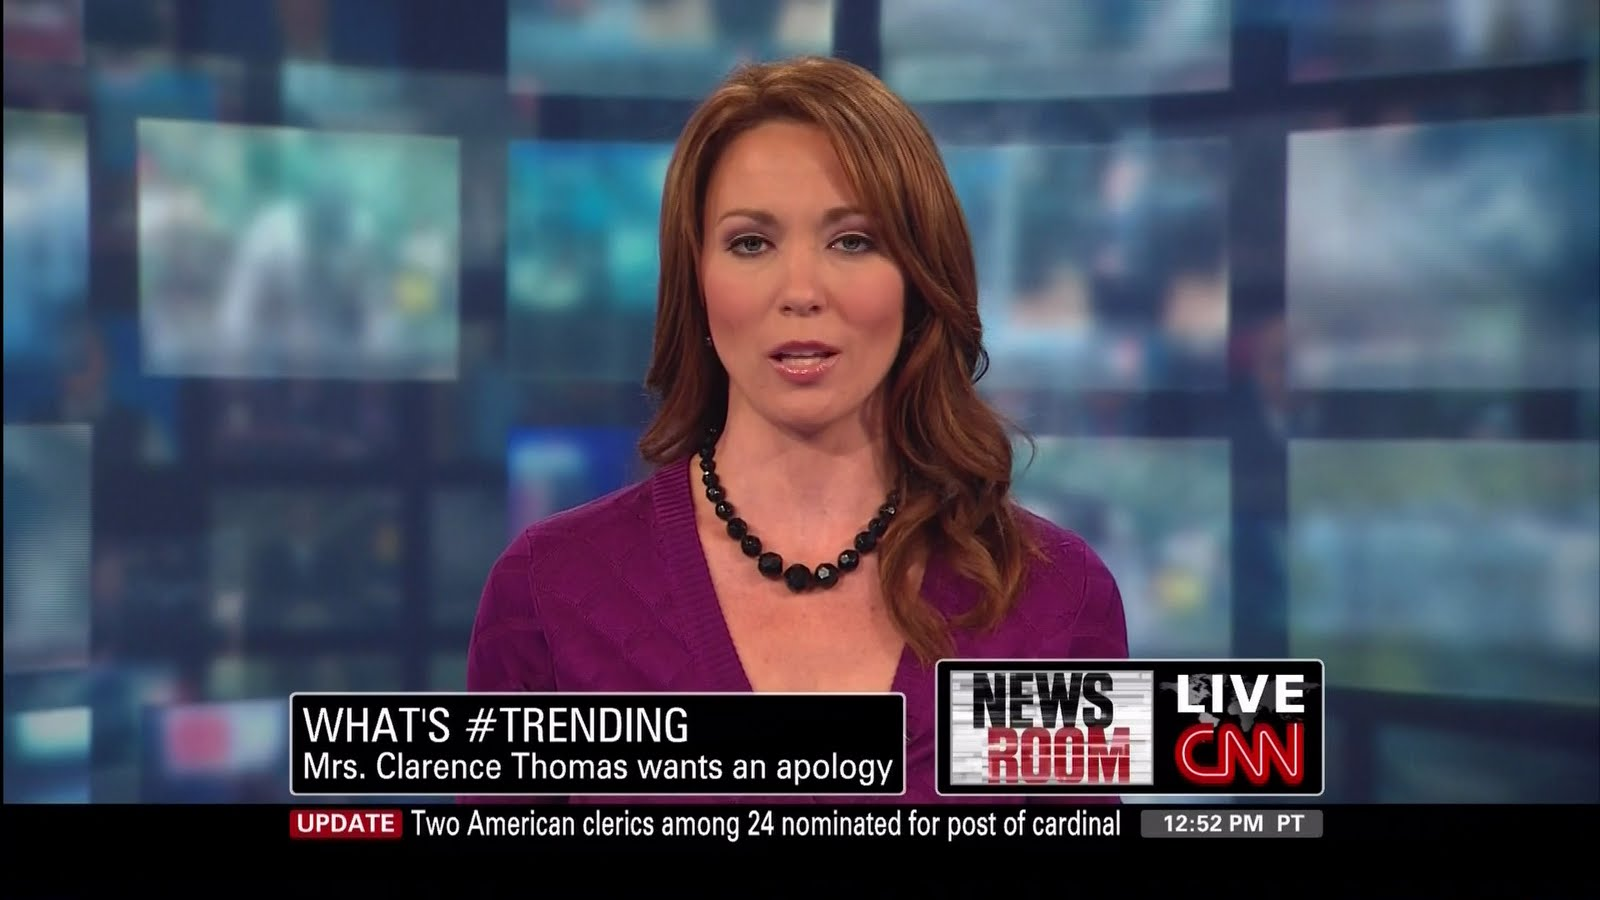 Brooke Baldwin Hot http://www.legcross.com/2011/05/wolf-blitzer-should-host-snl.html